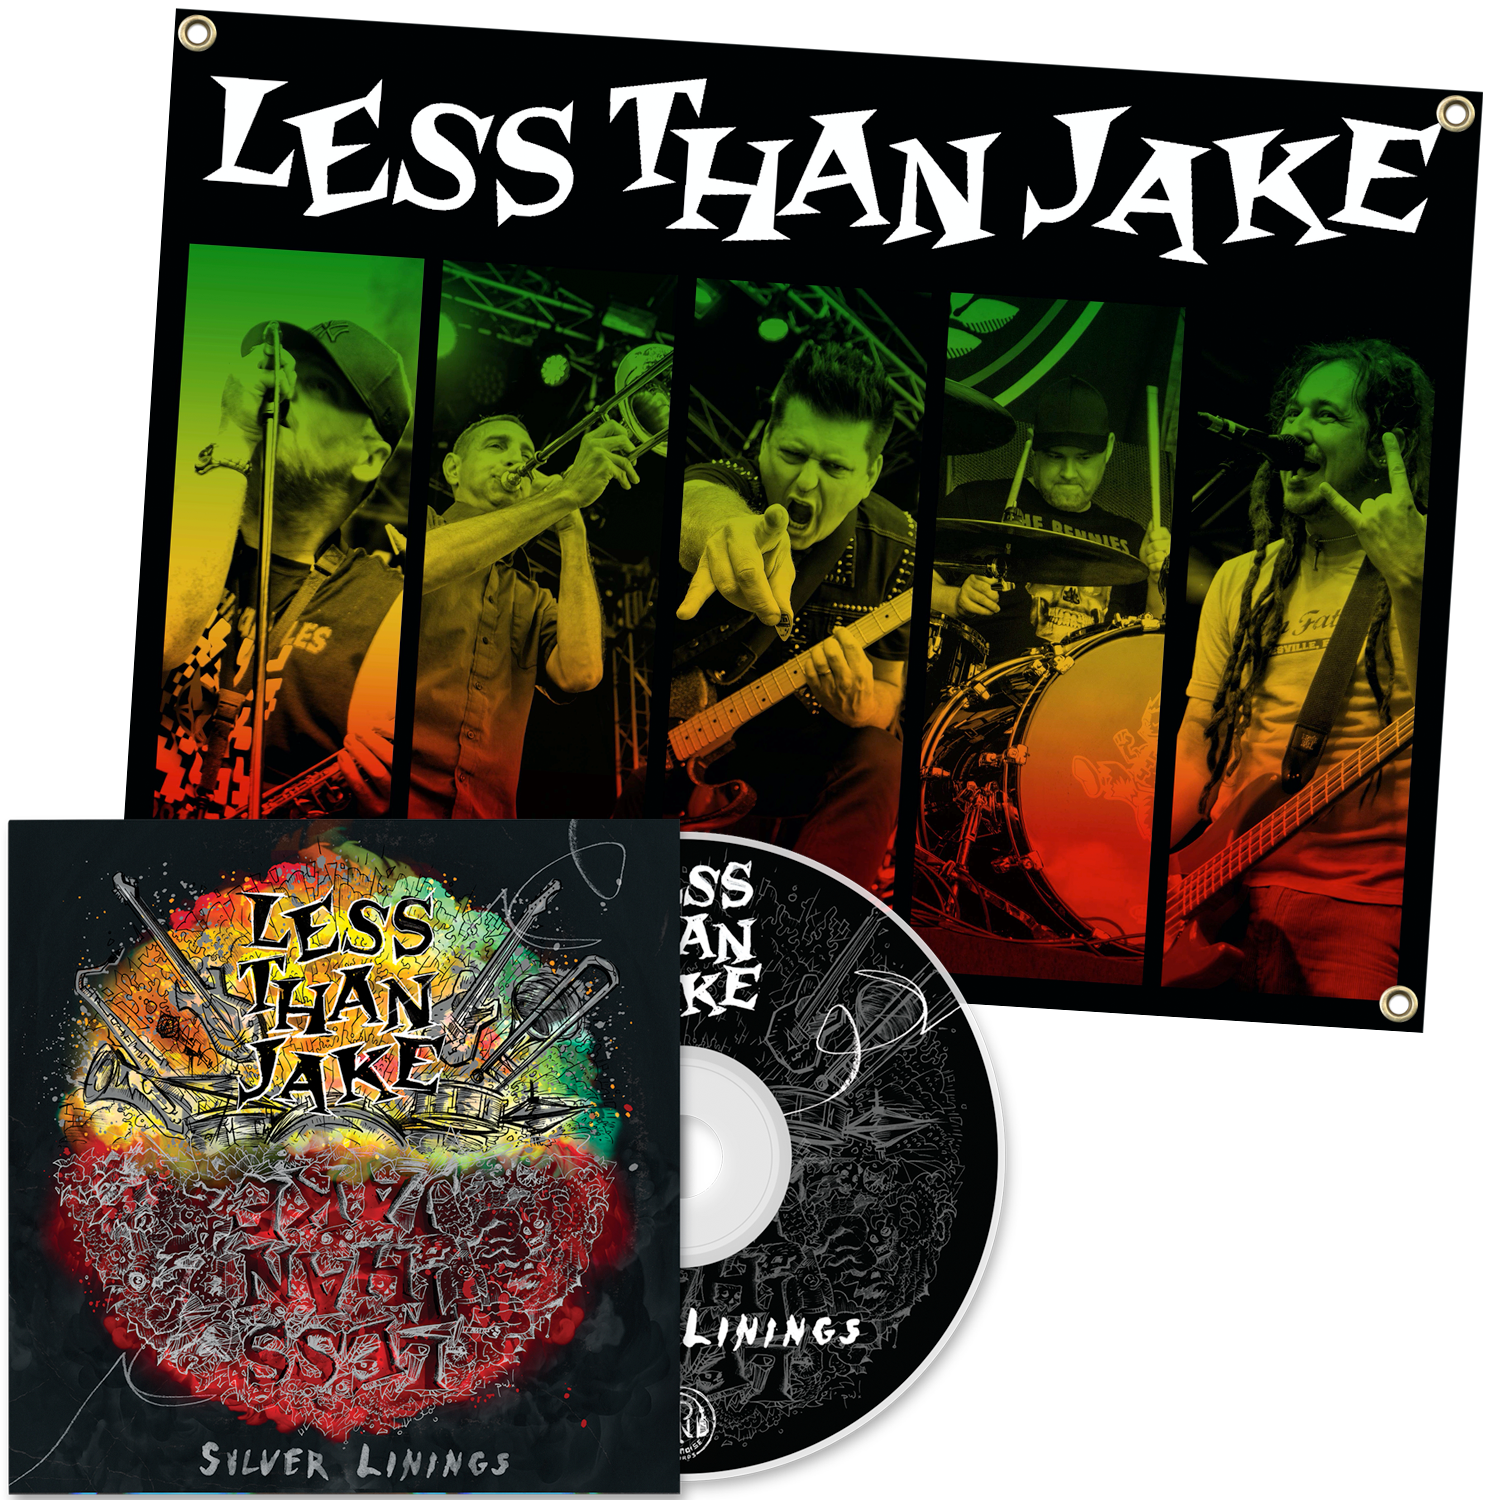 Less Than Jake 'Silver Linings' CD + Flag